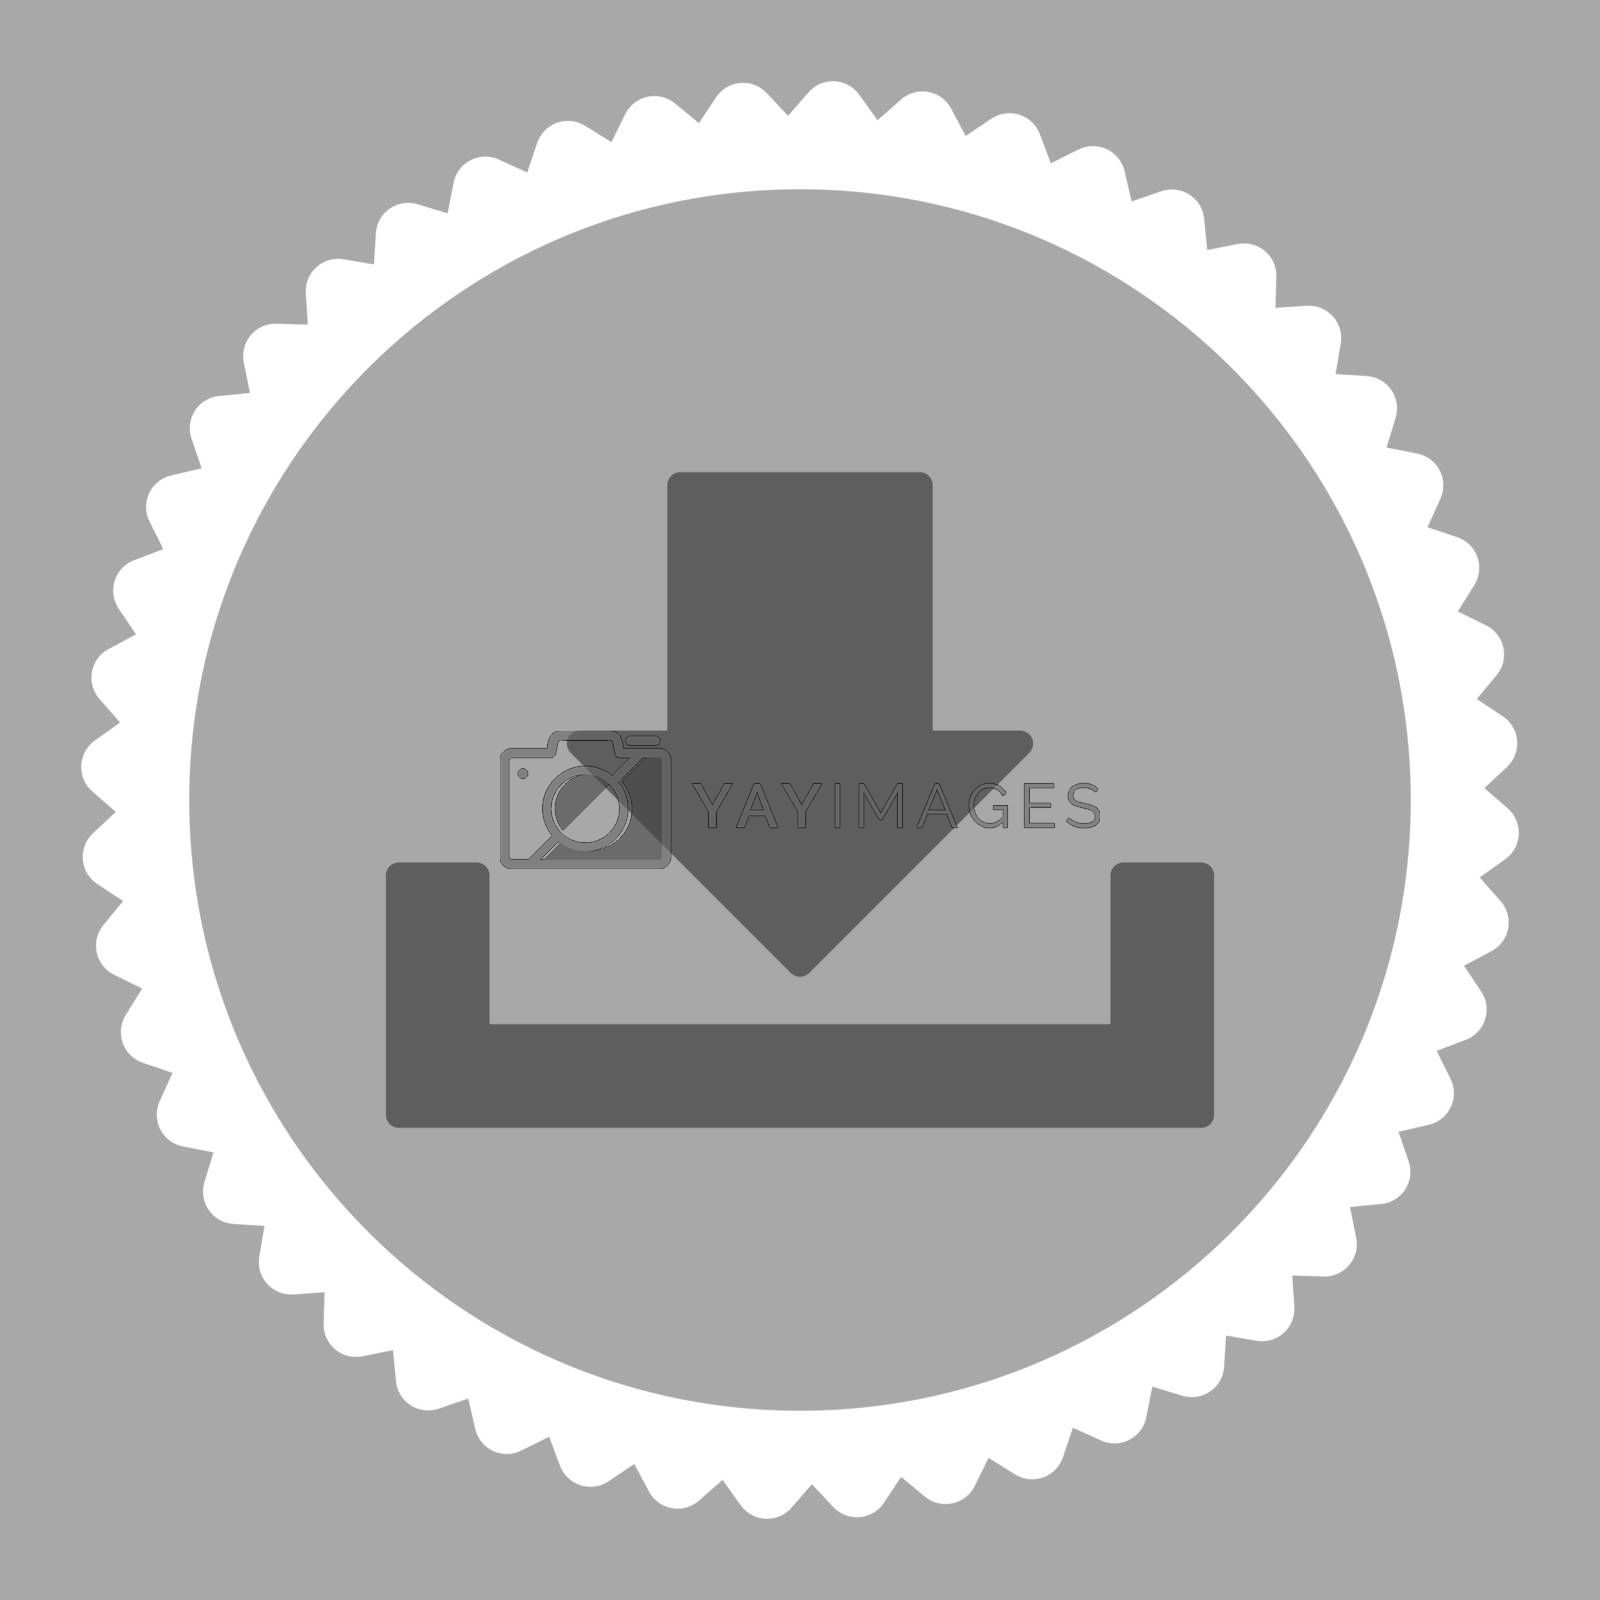 Download flat dark gray and white colors round stamp icon by Aha-Soft